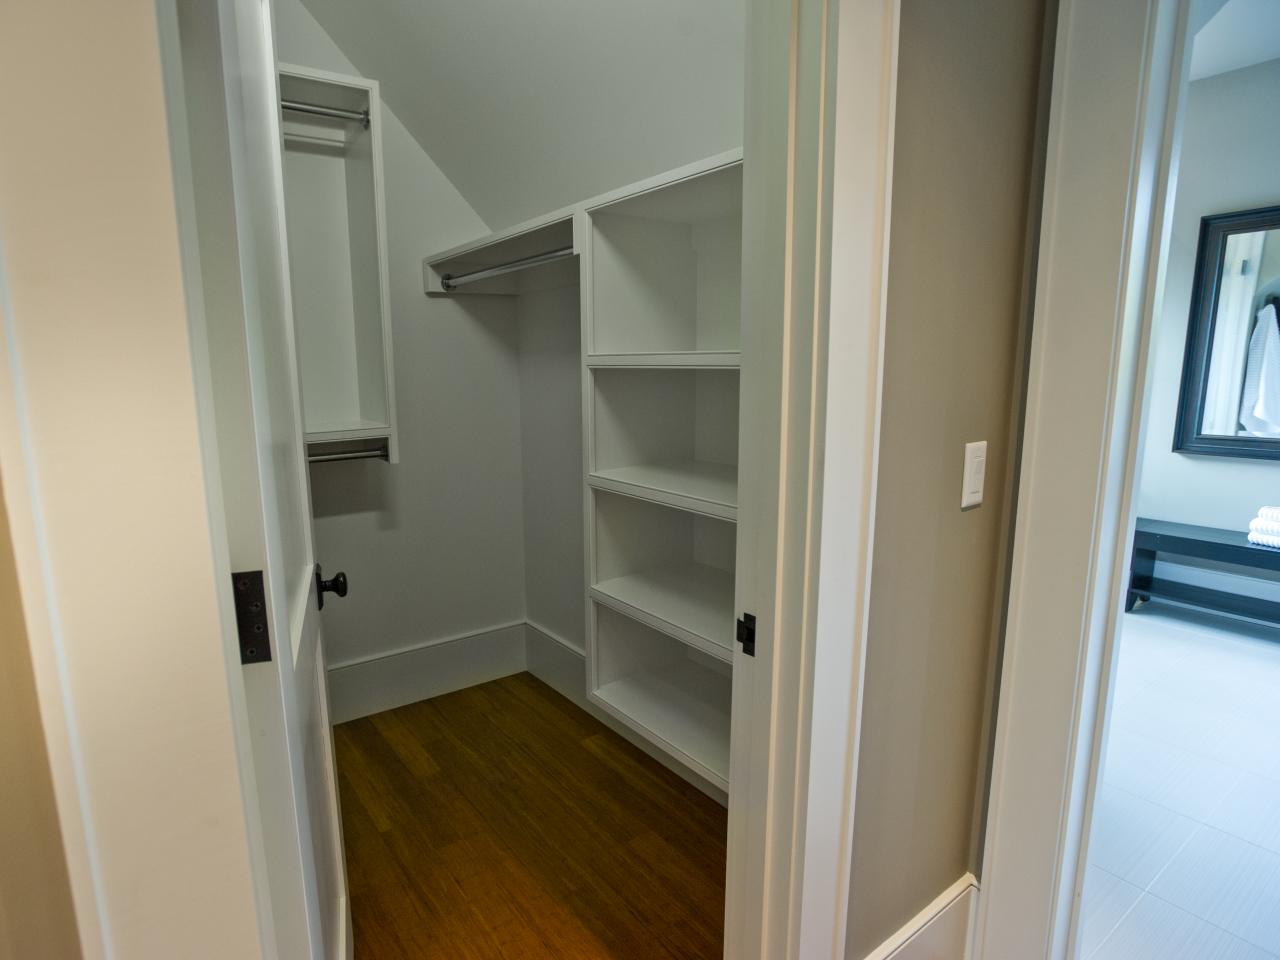 Hgtv dream home 2013 guest bedroom pictures and video Walk in bedroom closets